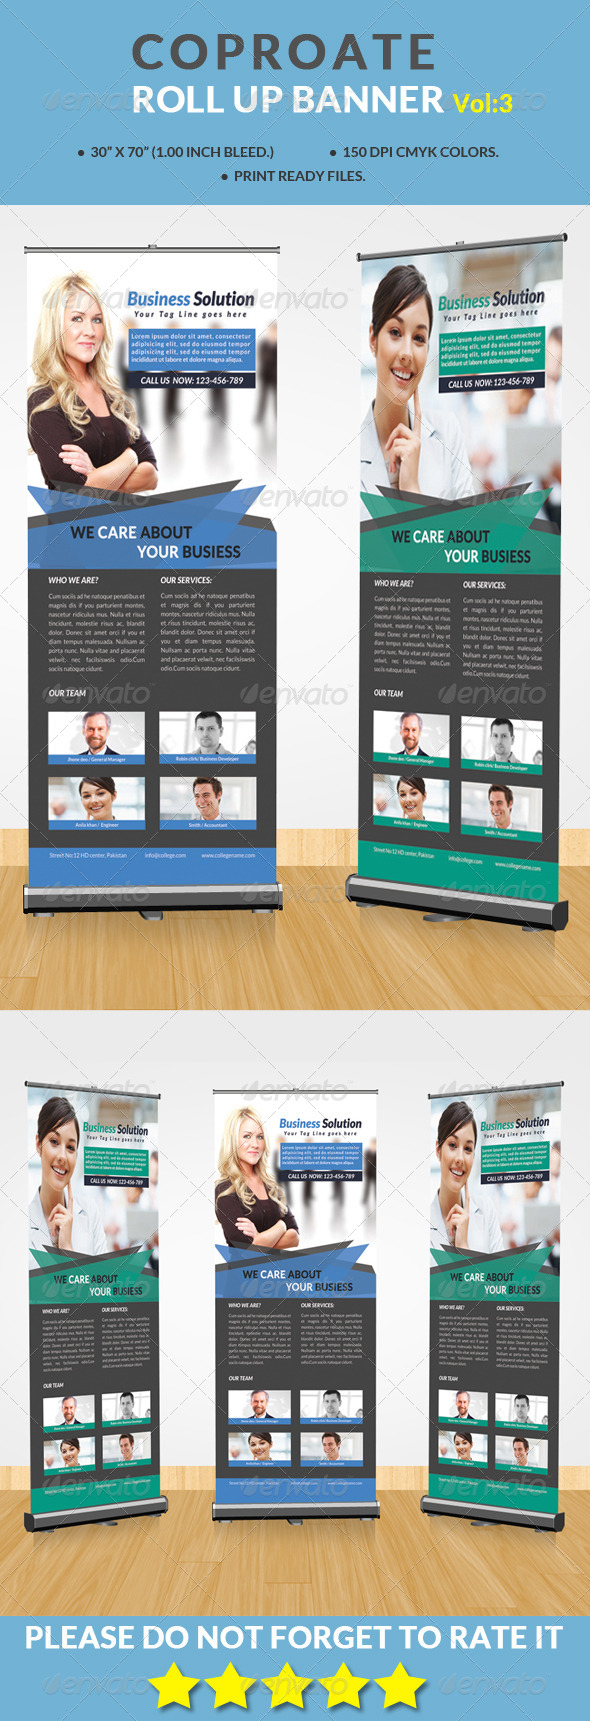 GraphicRiver Corporate Roll-up Banner Vol 3 8659238